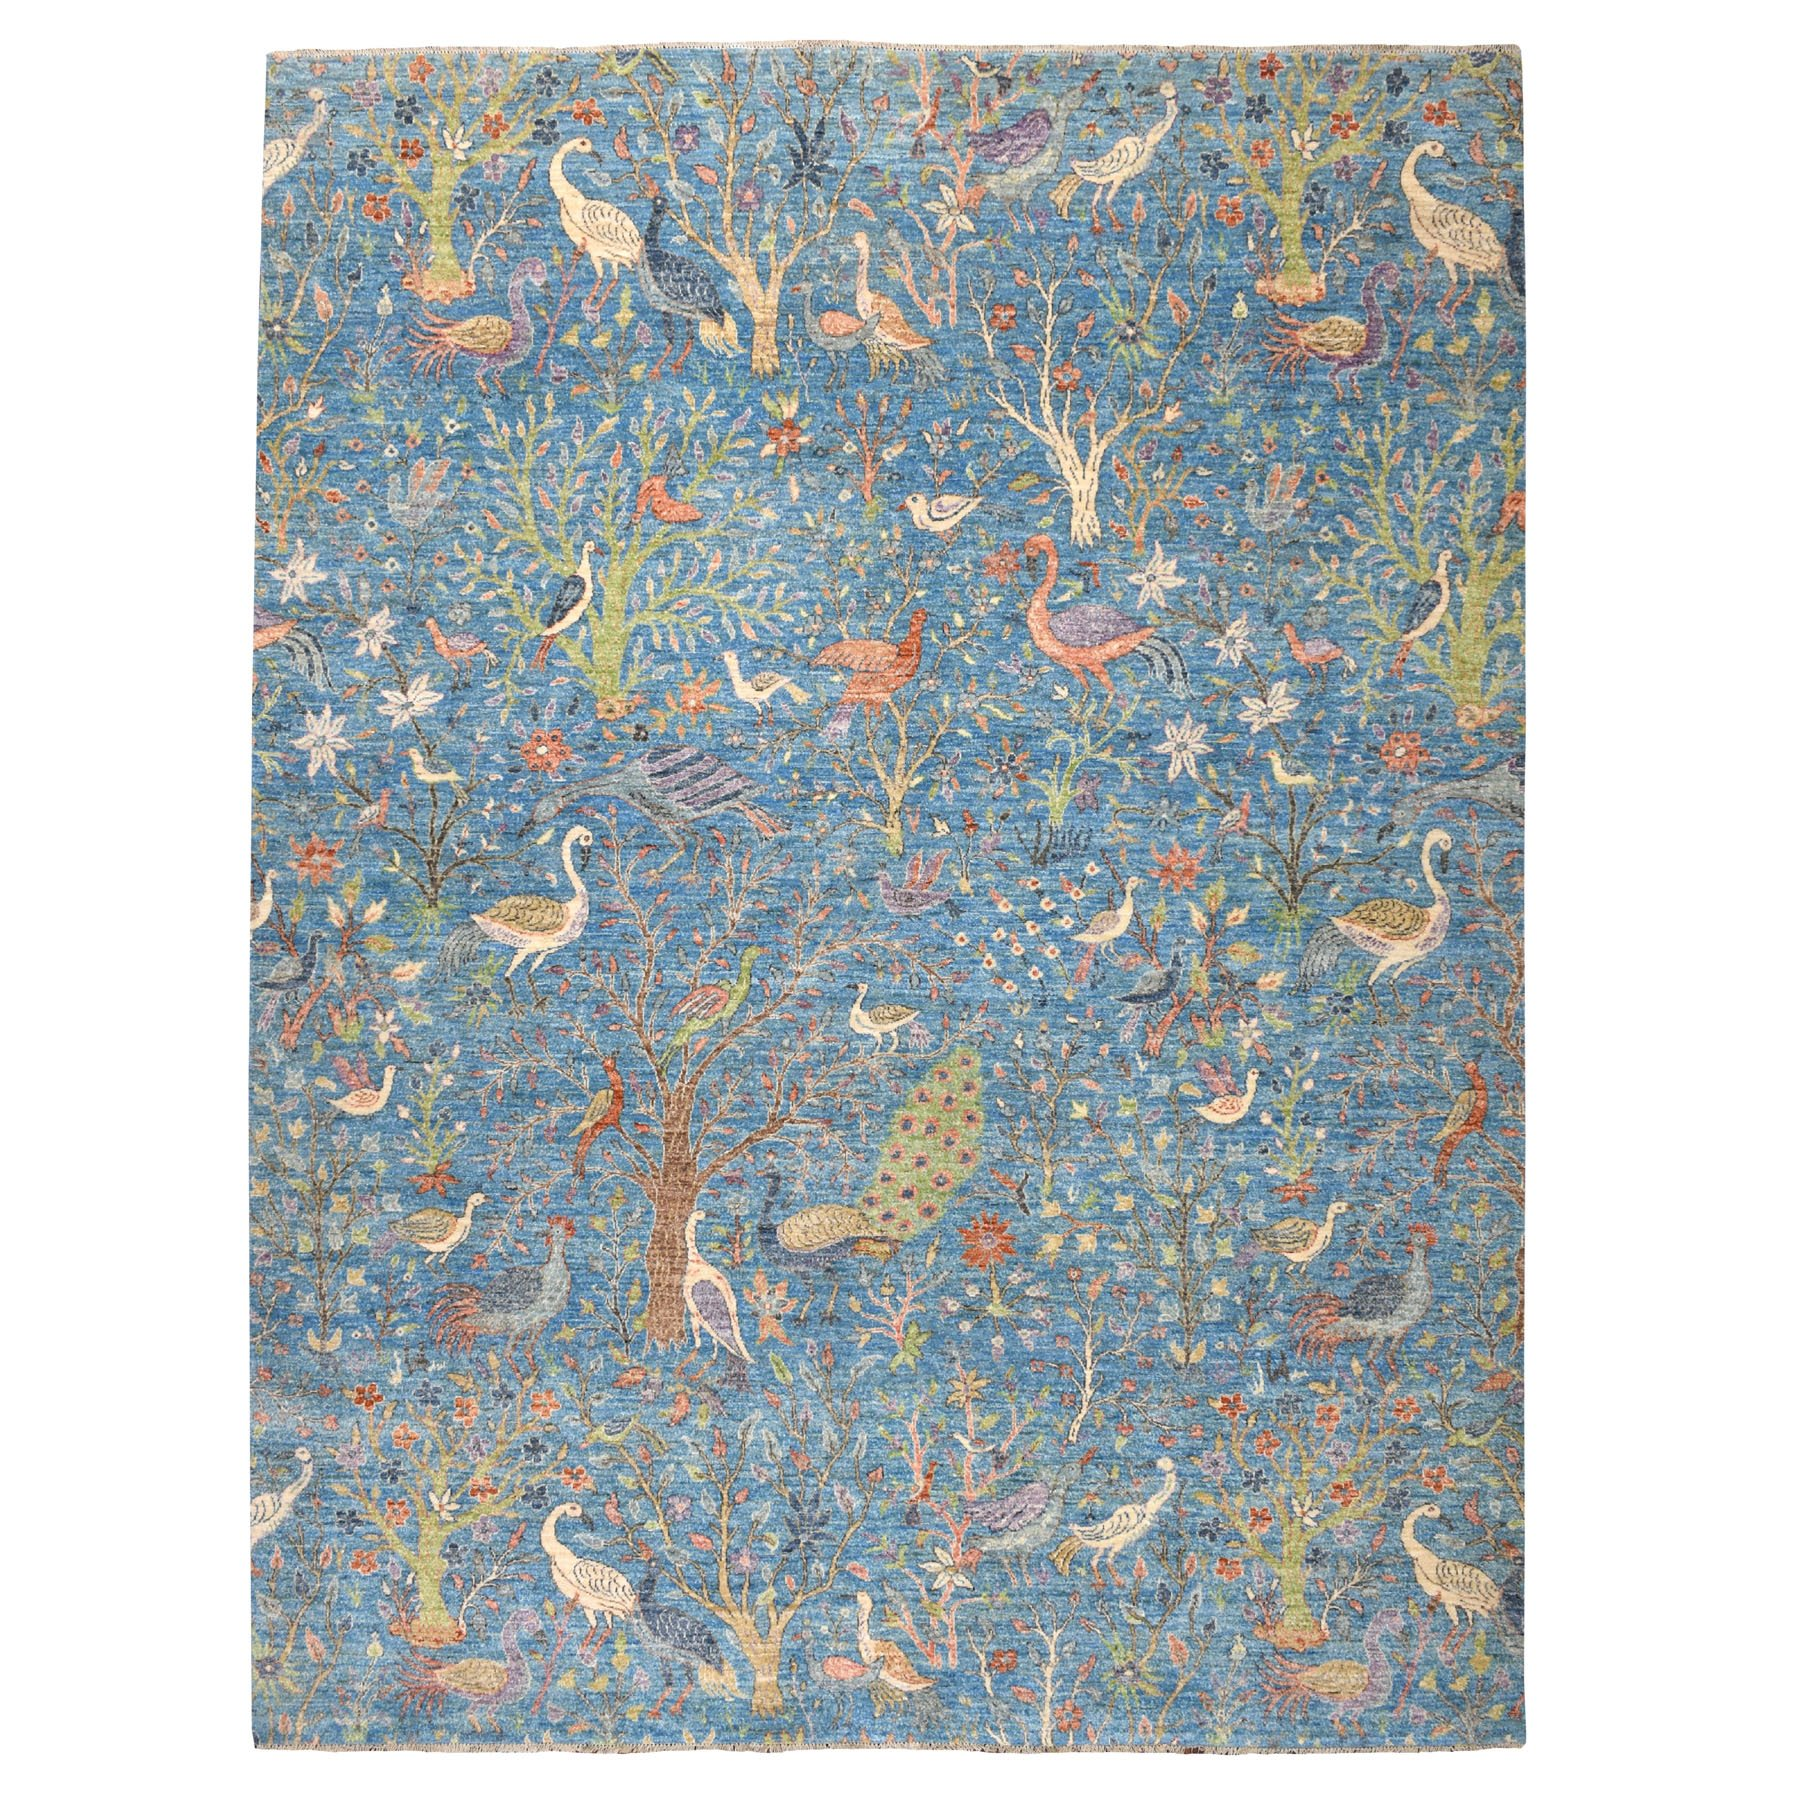 9'x12' Blue Birds of Paradise Peshawar Pure Wool Hand Knotted Oriental Rug